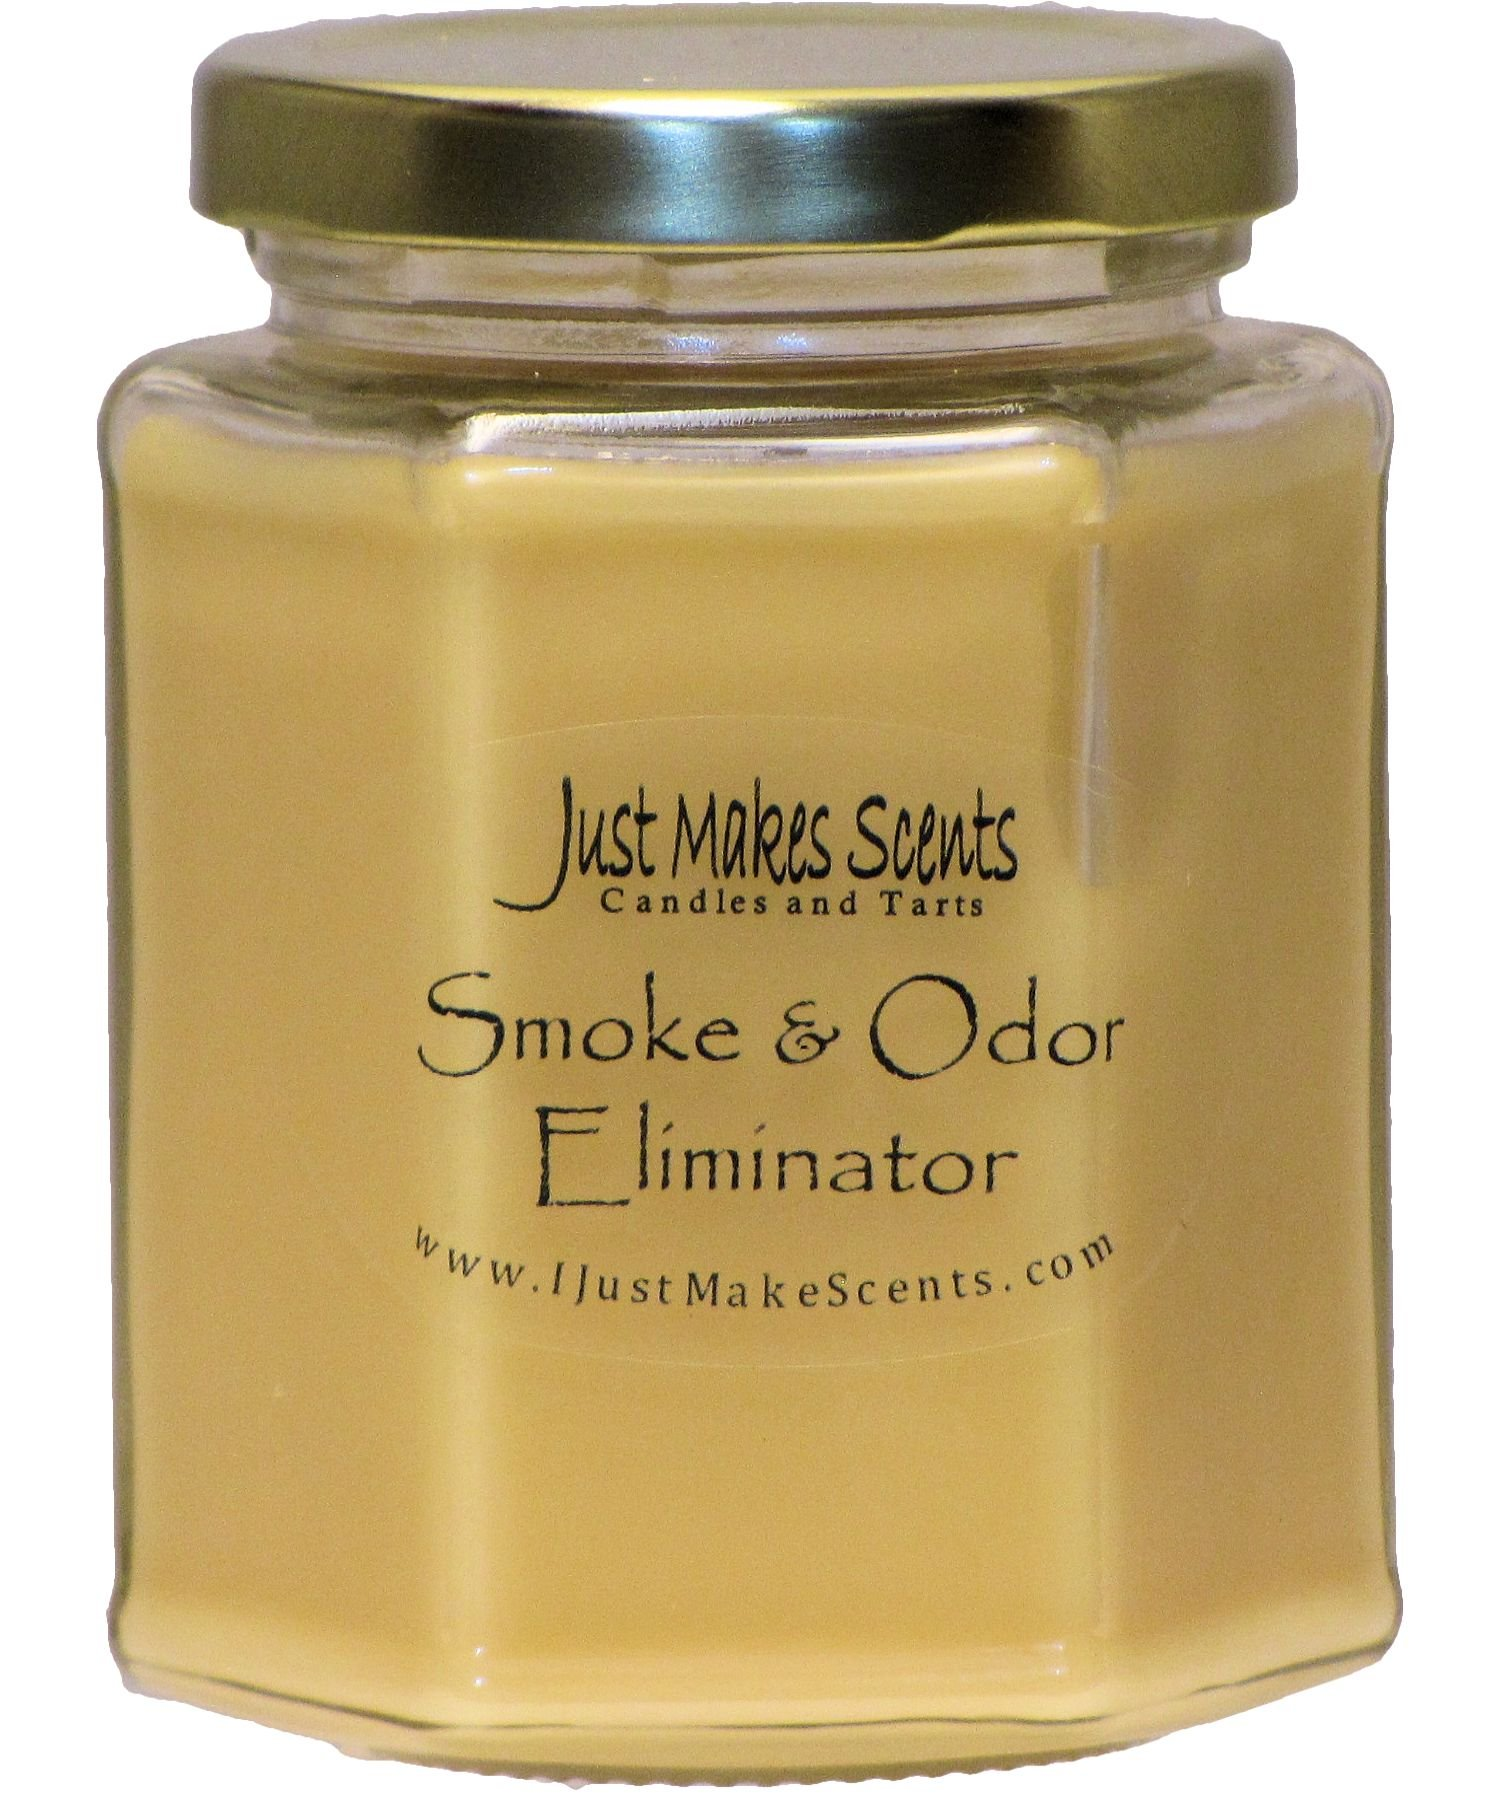 Smoke & Odor Eliminator Blended Soy Candle | Neutralizes Cigarette, Food and Pet Odors | Hand Poured in The USA by Just Makes Scents by Just Makes Scents Candles & Gifts